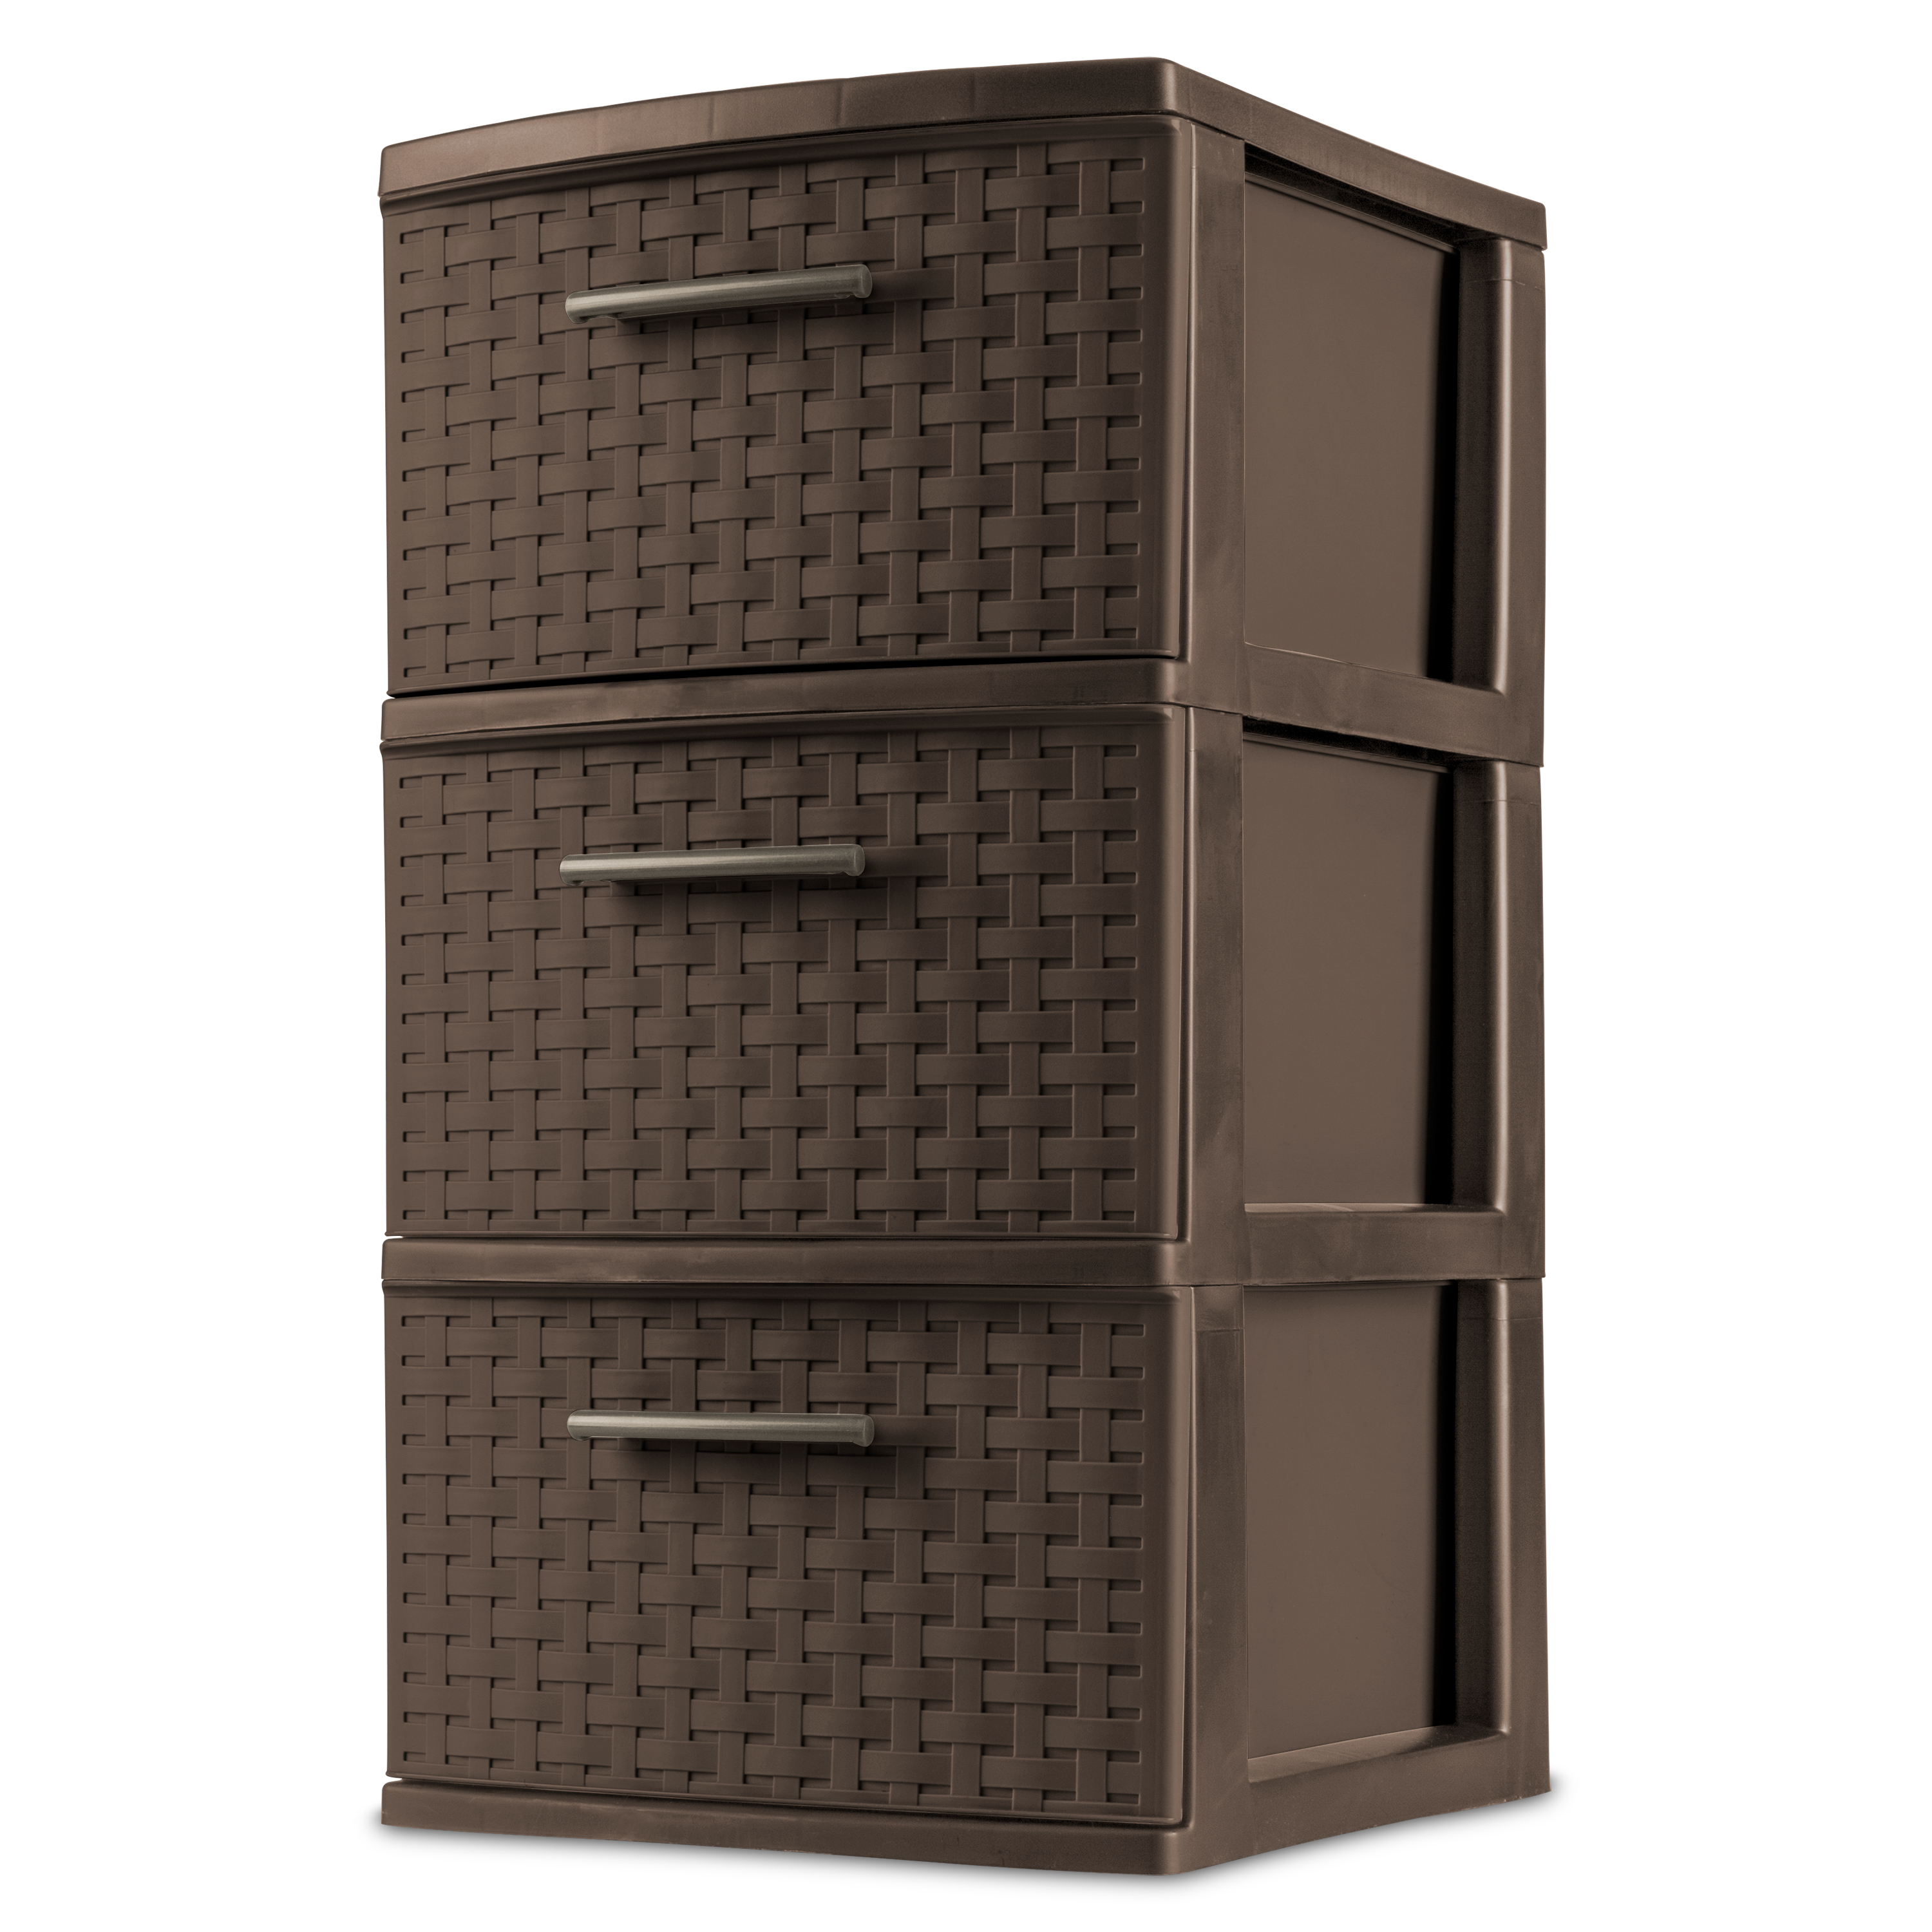 Sterilite 3 Drawer Weave Tower, Espresso